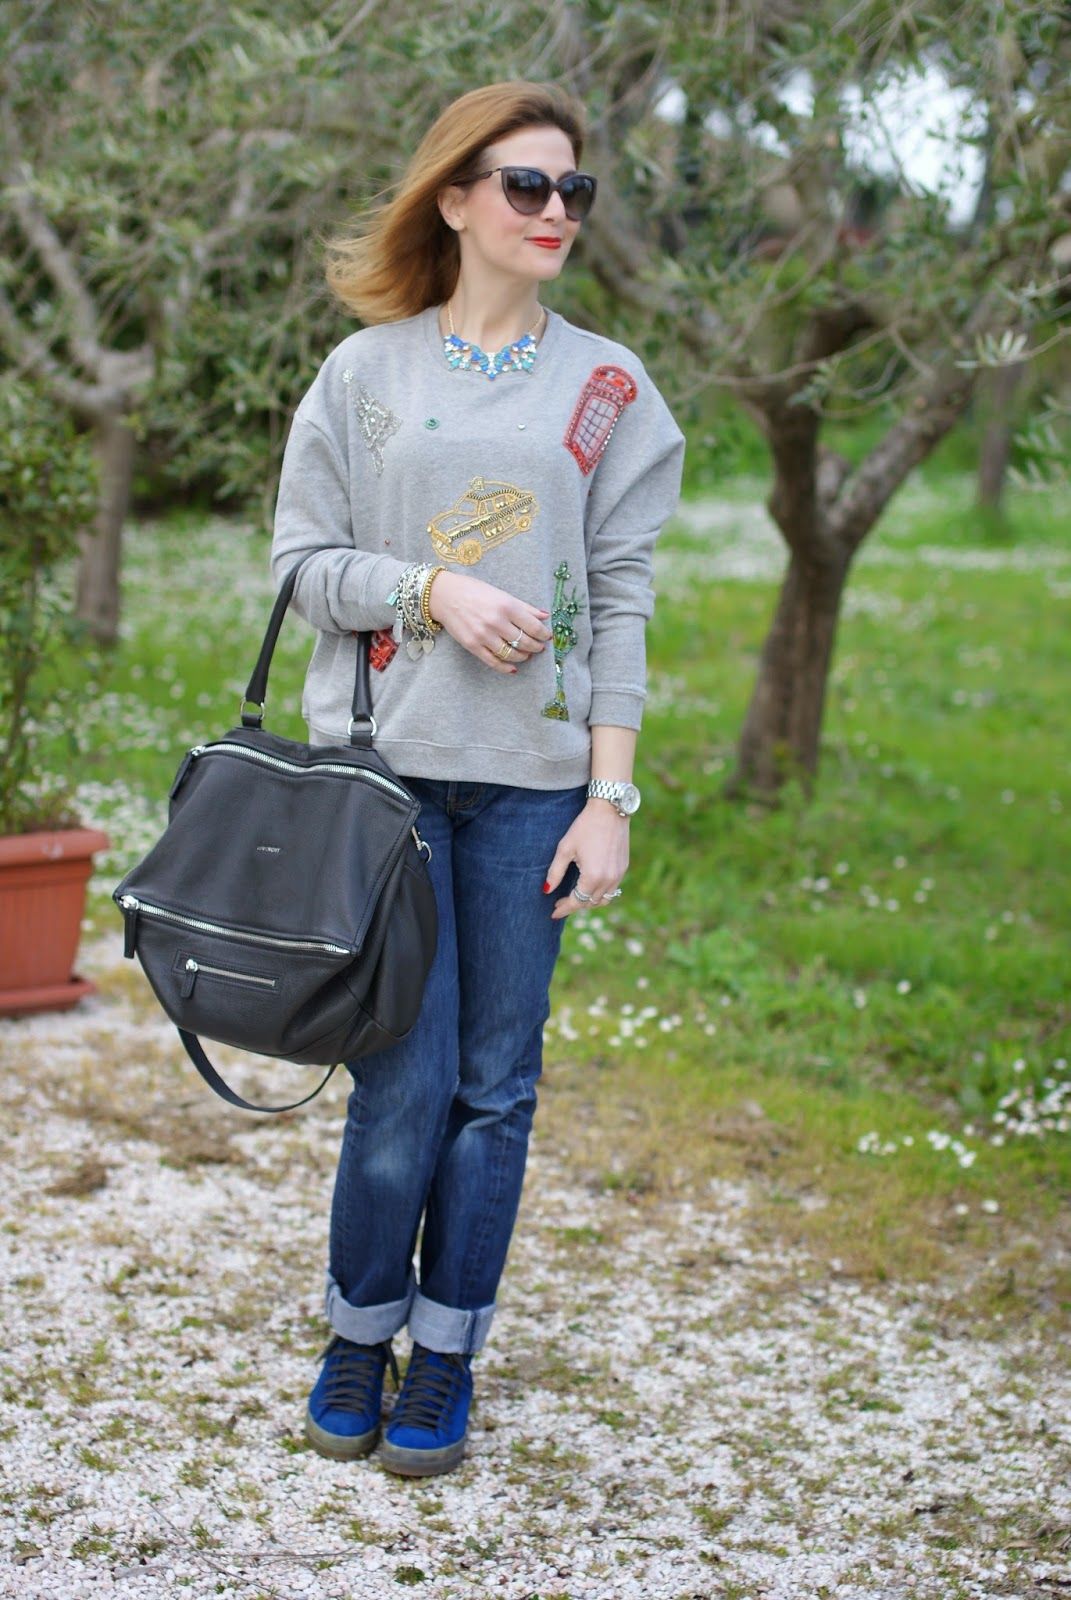 Givenchy Pandora grande, Zara embroidered sweatshirt, Ruco Line blue sneakers, Fashion and Cookies, fashion blogger